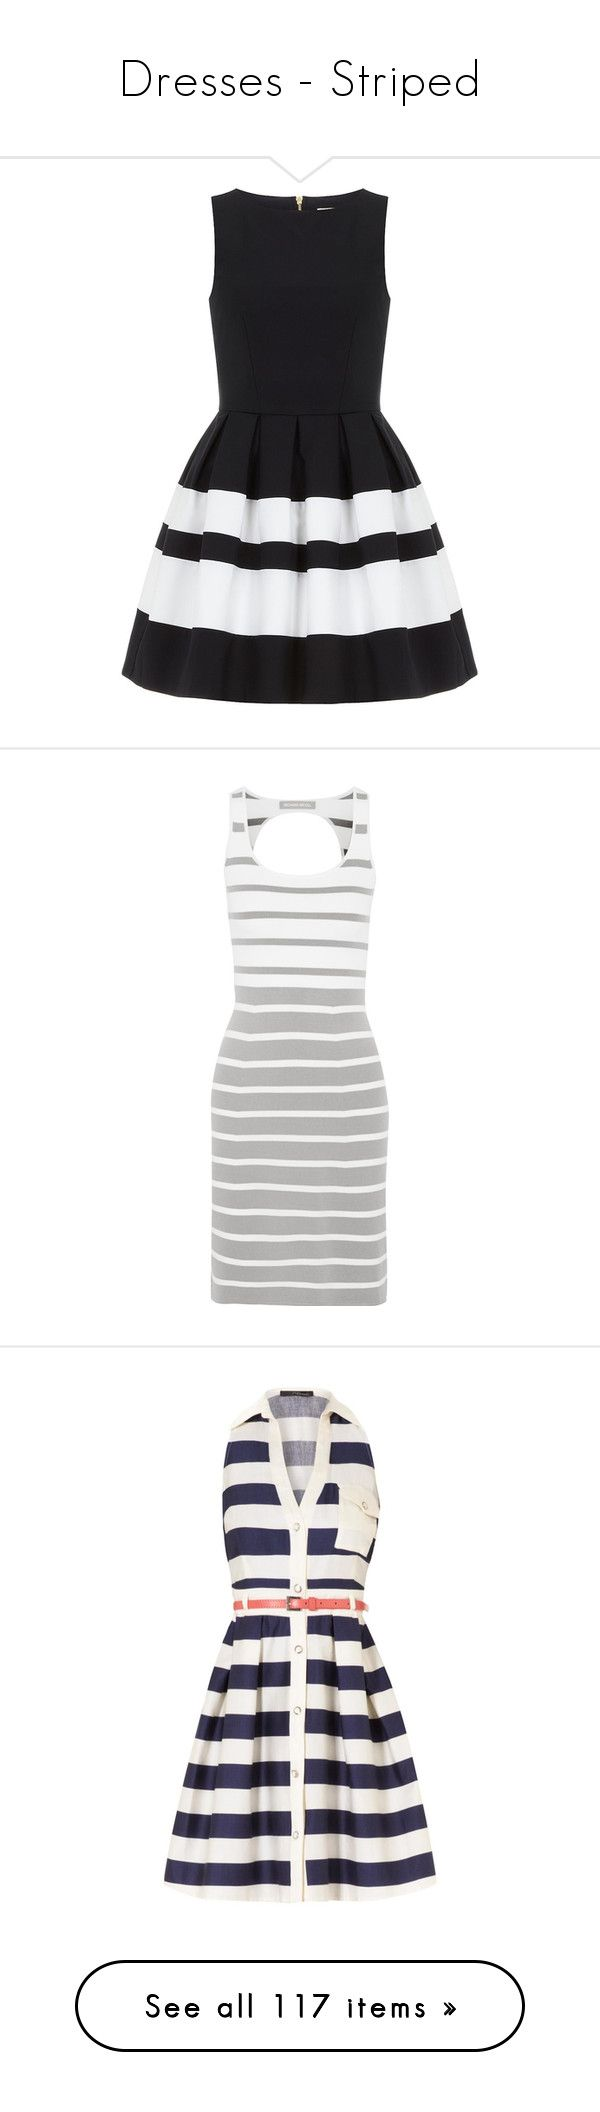 """""""Dresses - Striped"""" by giovanna1995 ❤ liked on Polyvore featuring dresses, vestidos, short dresses, striped, blue, navy stripe dress, cotton dress, navy short dress, blue sleeveless dress and richard nicoll dress"""